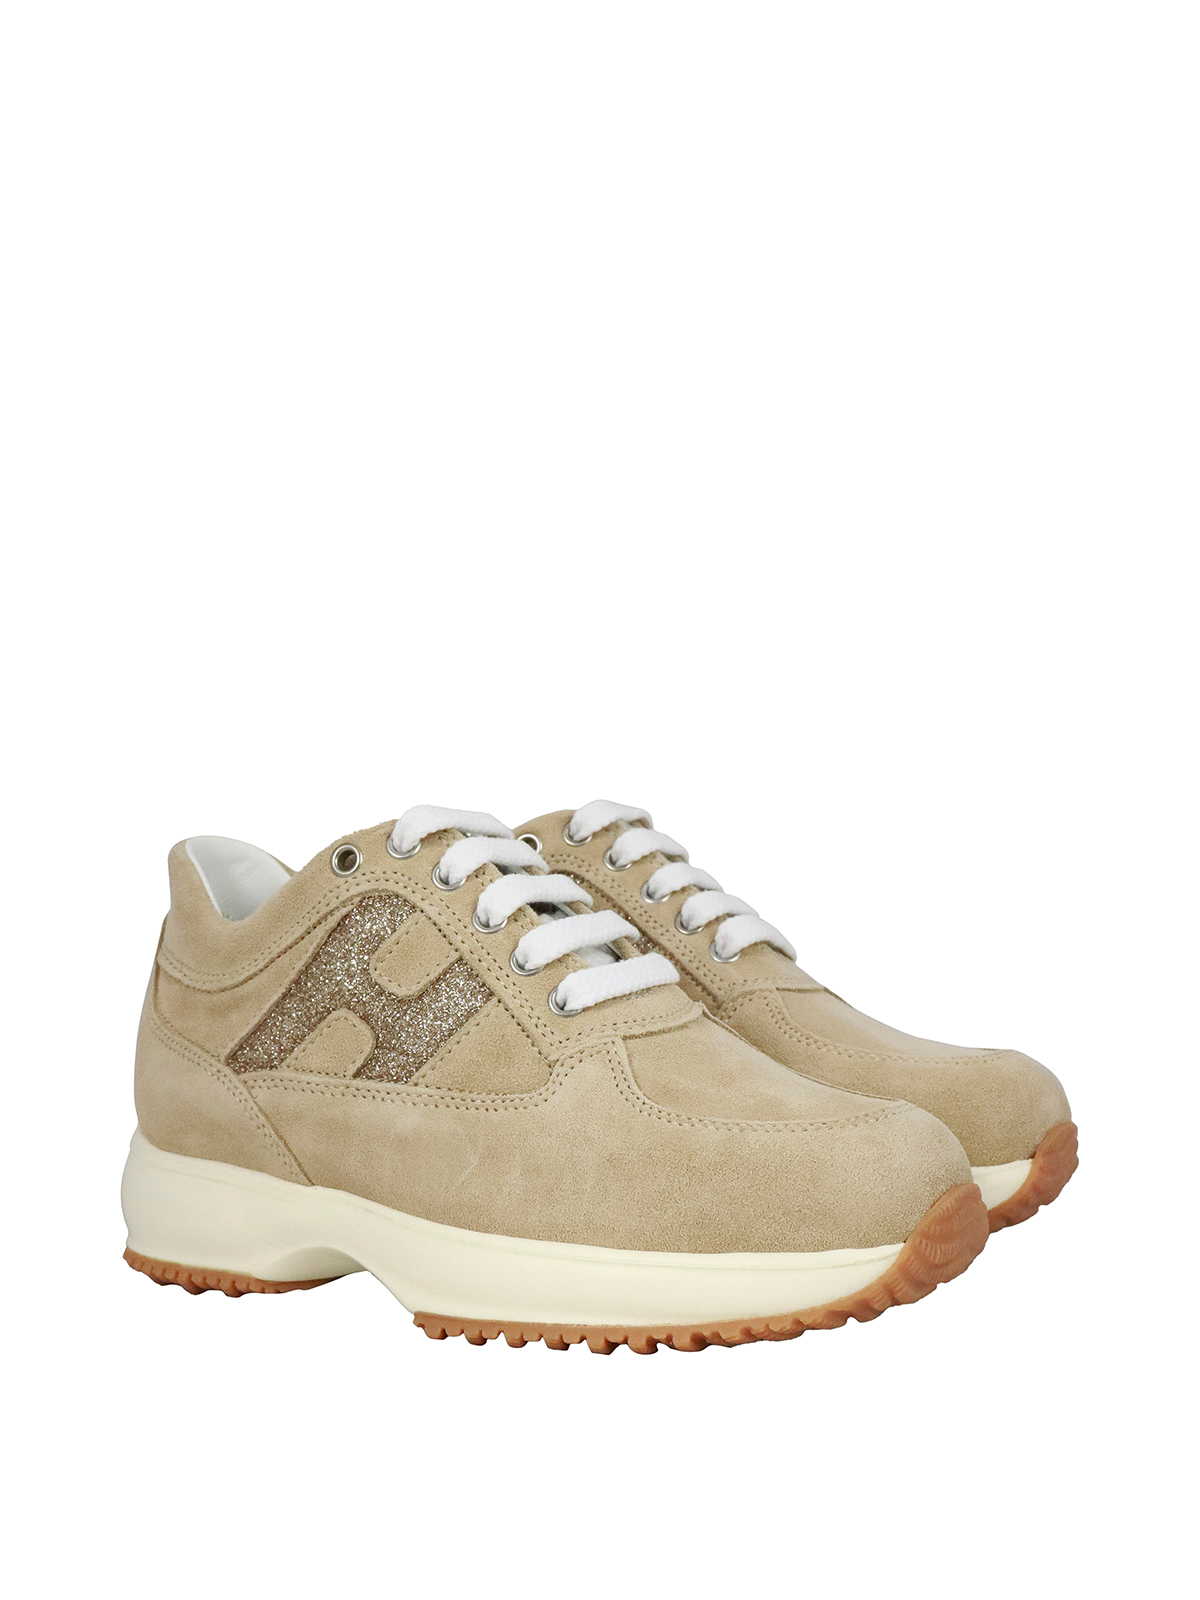 Hogan Junior - Interactive sneakers - trainers - HXC00N0O241FTY2F22